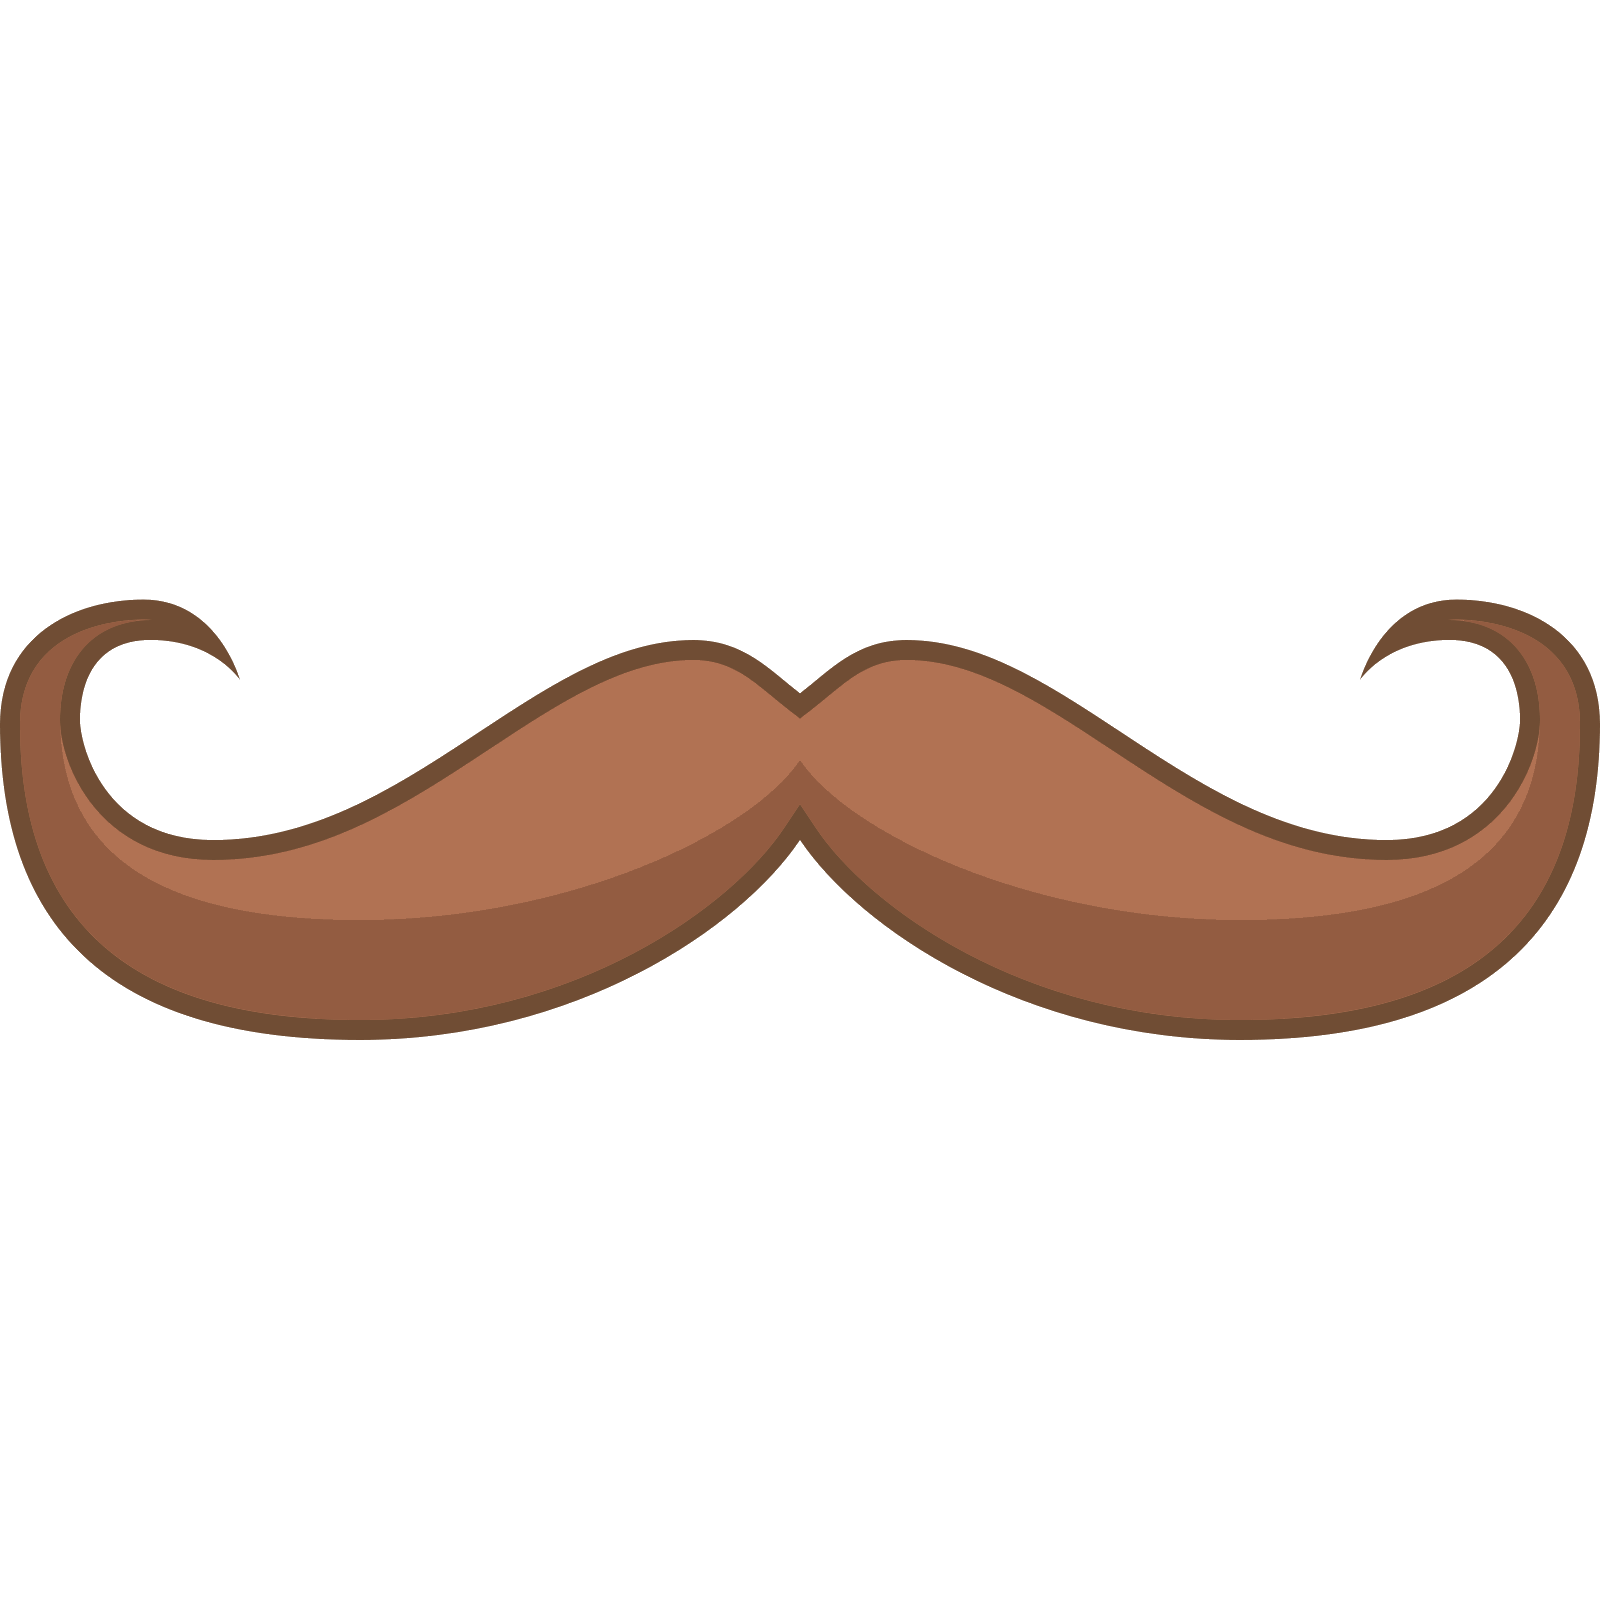 Handlebar moustache png. Mustache icon free download